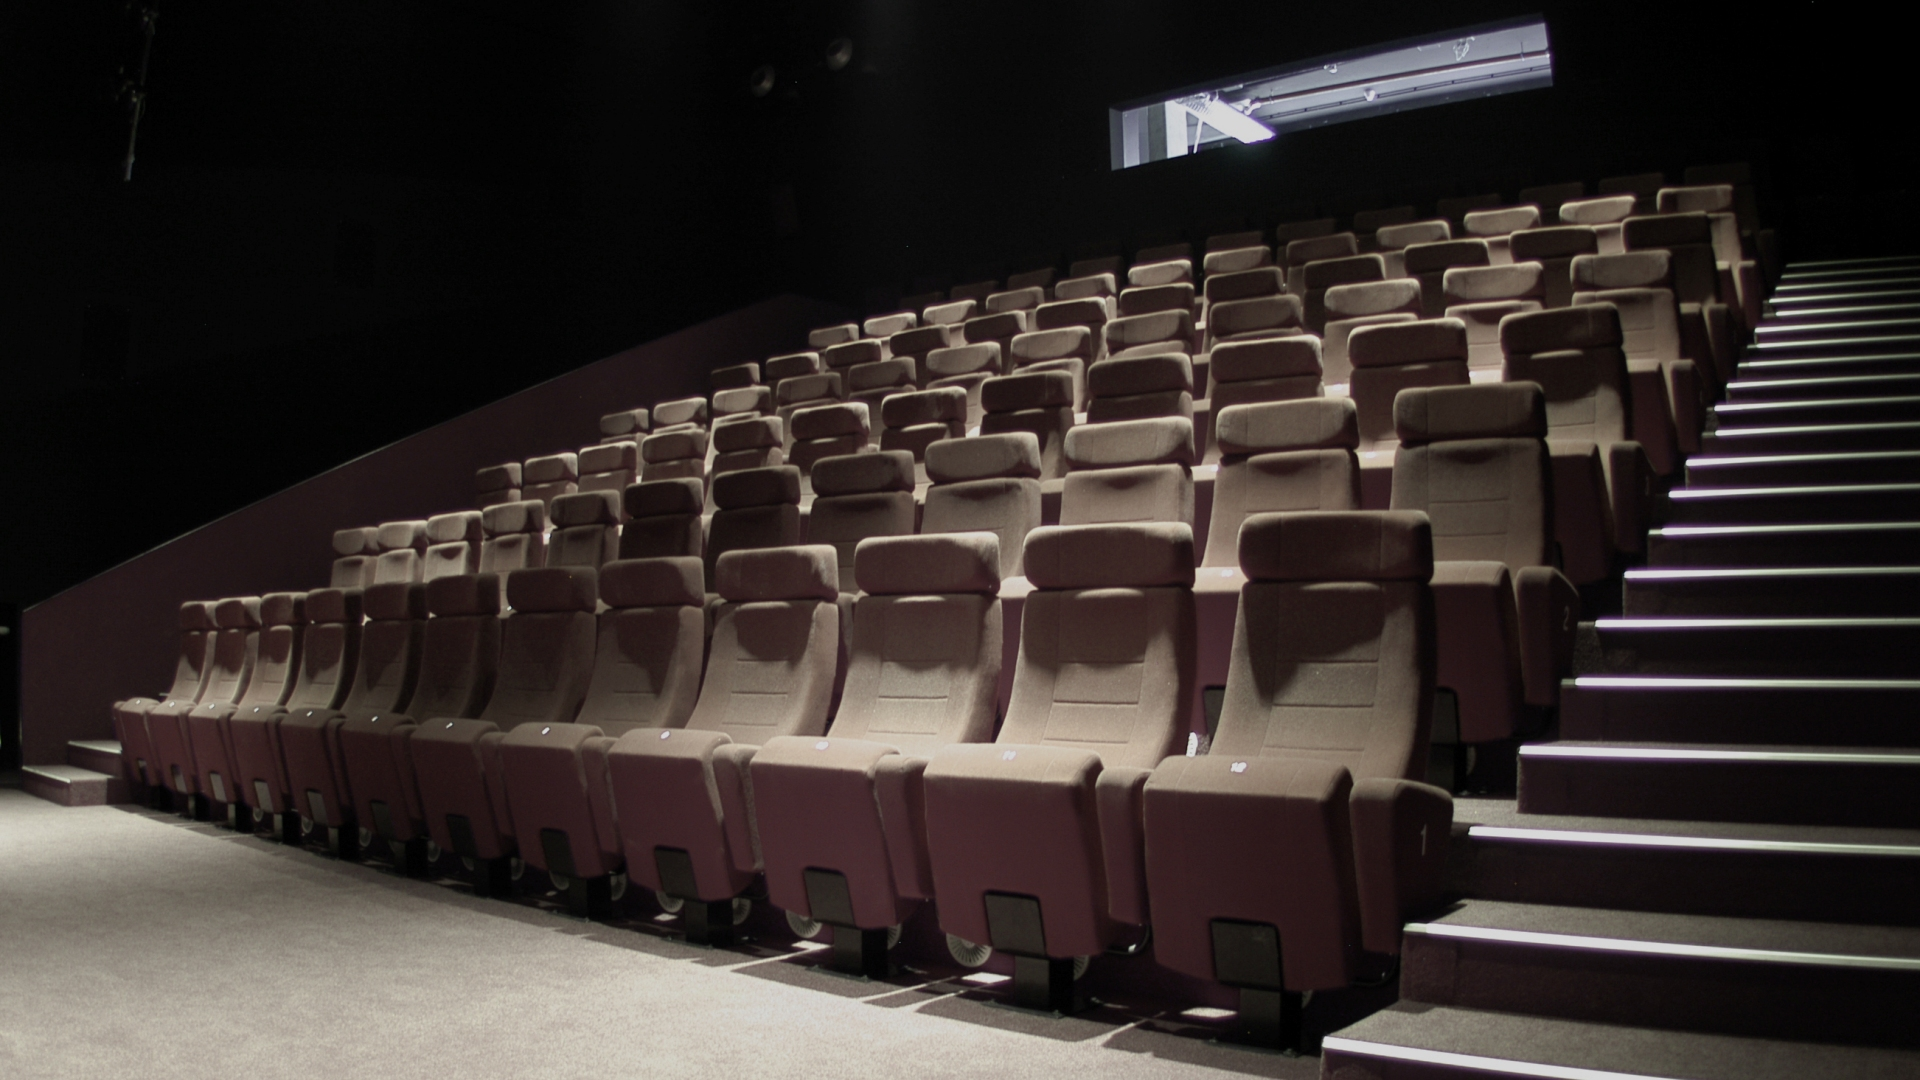 Movie theater wallpaper wallpapersafari for Wallpaper home cinema